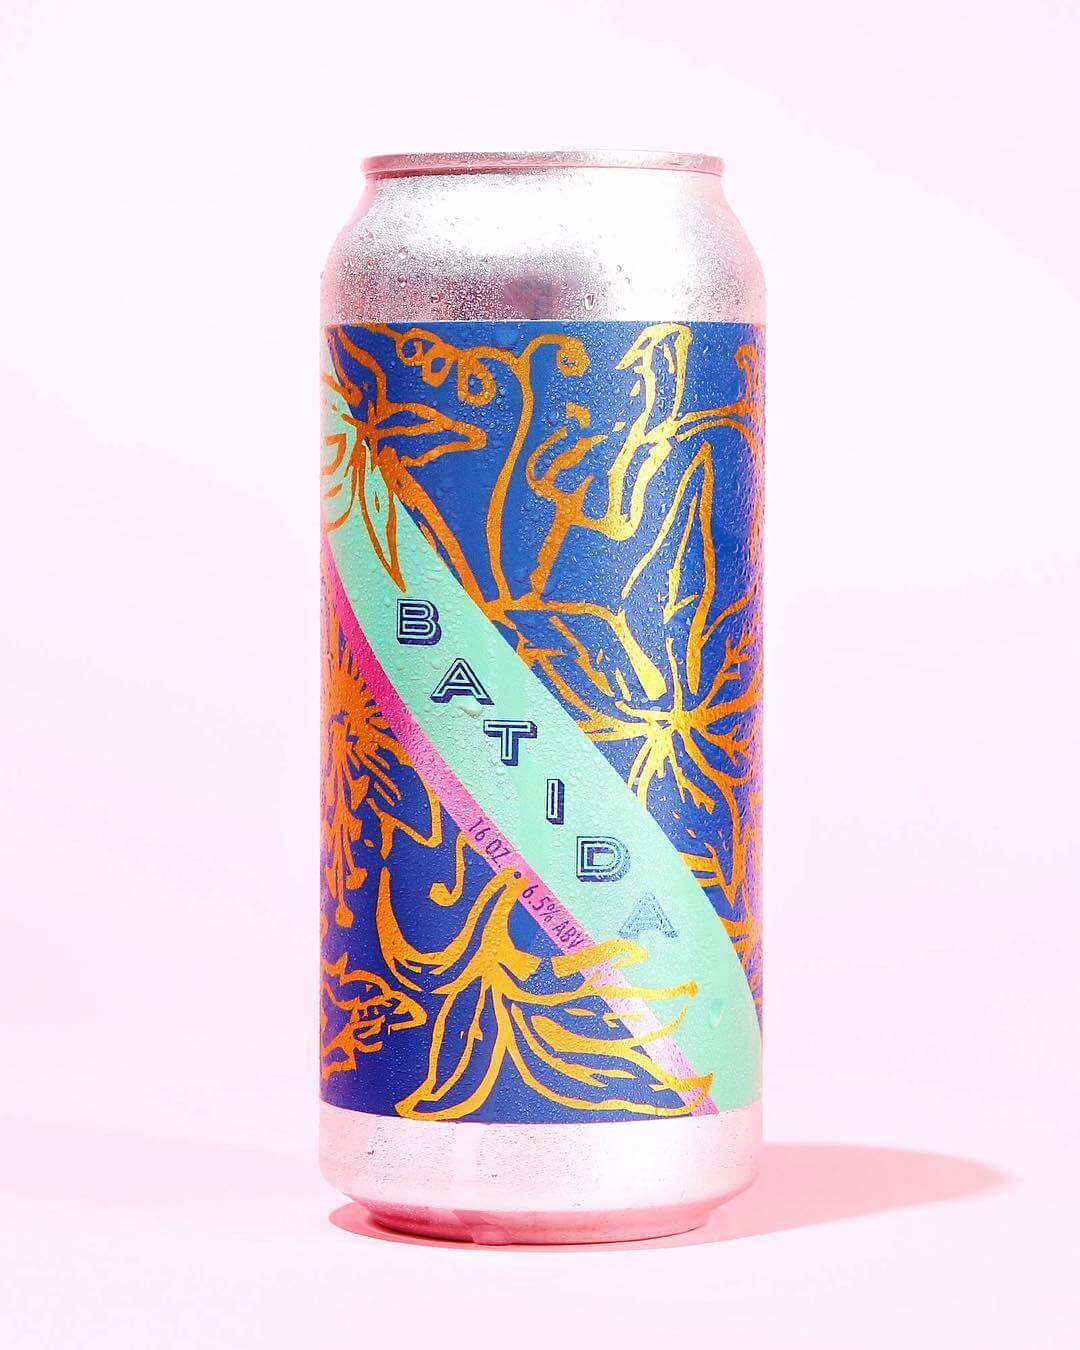 Southern Grist Brewing Co. / Finback Brewery — Batida